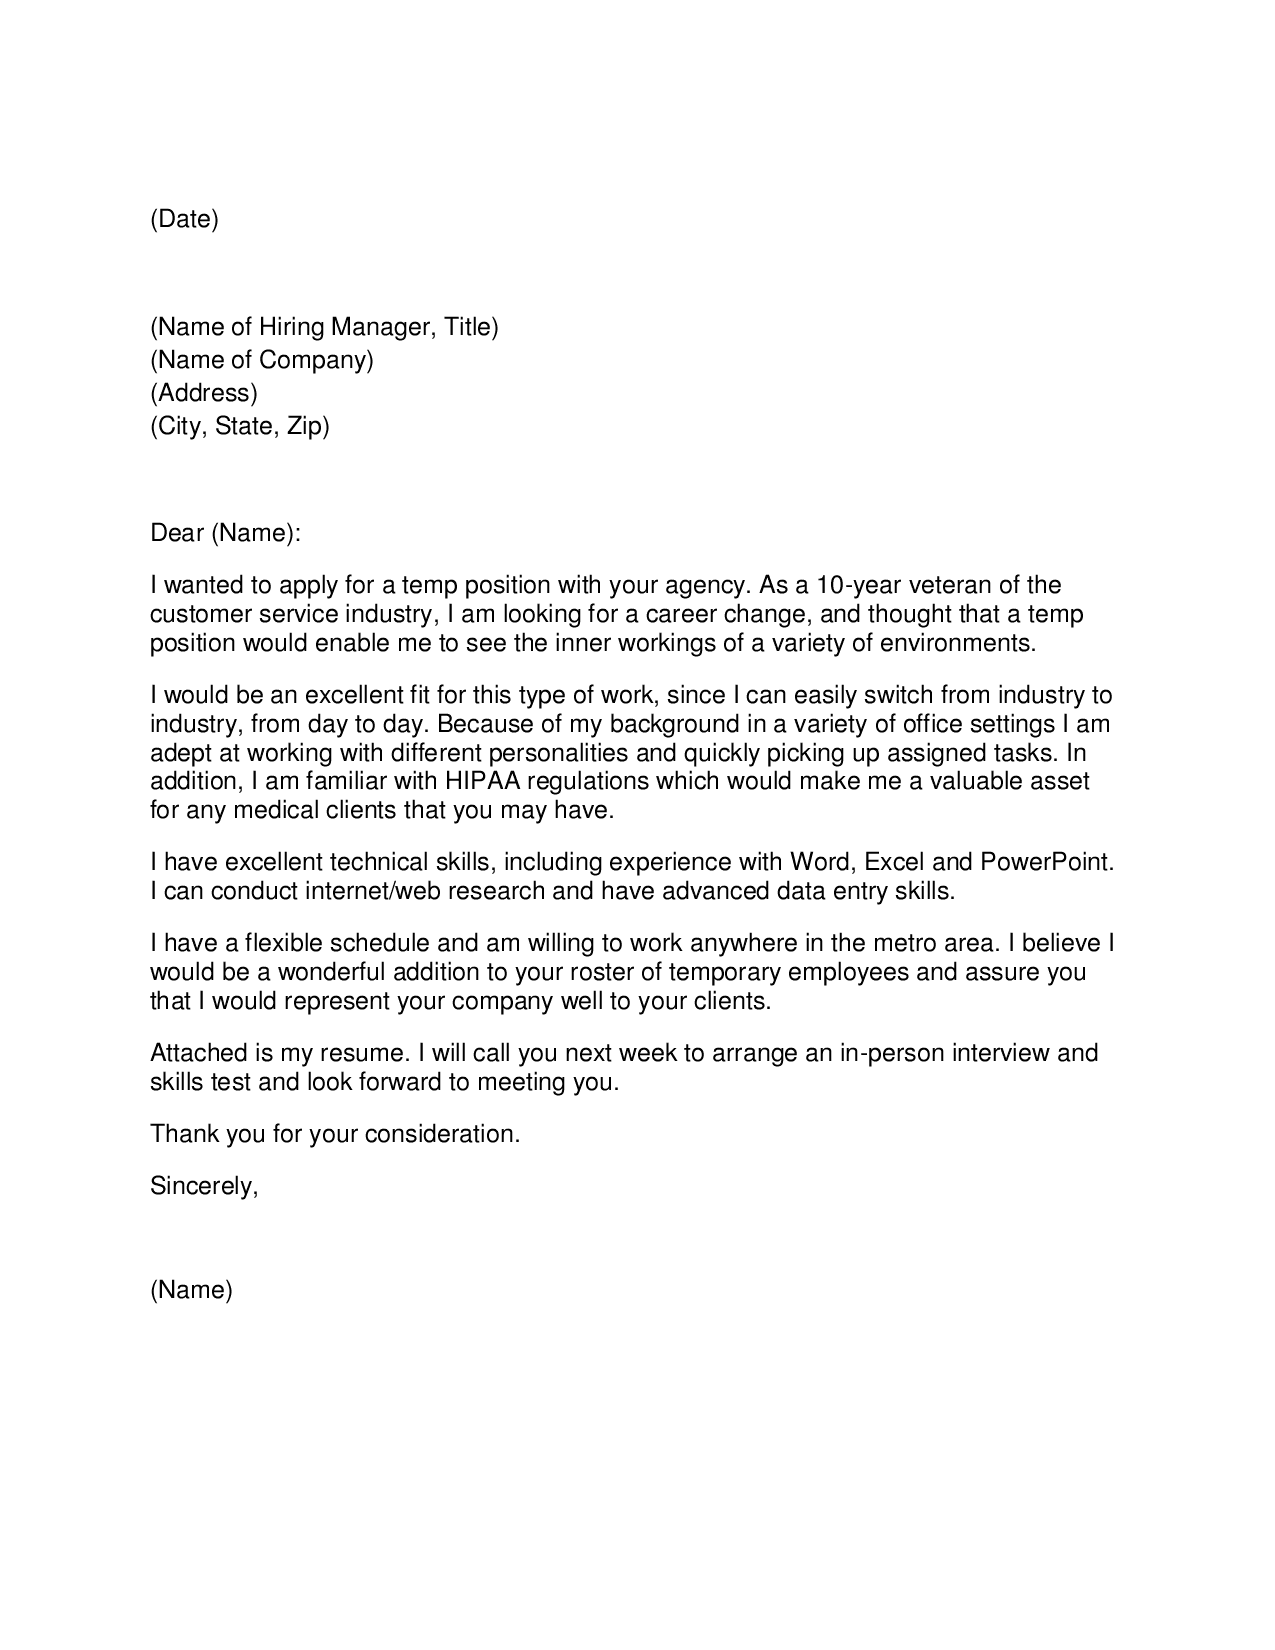 doc 8310 thank you letter for keeping resume on file